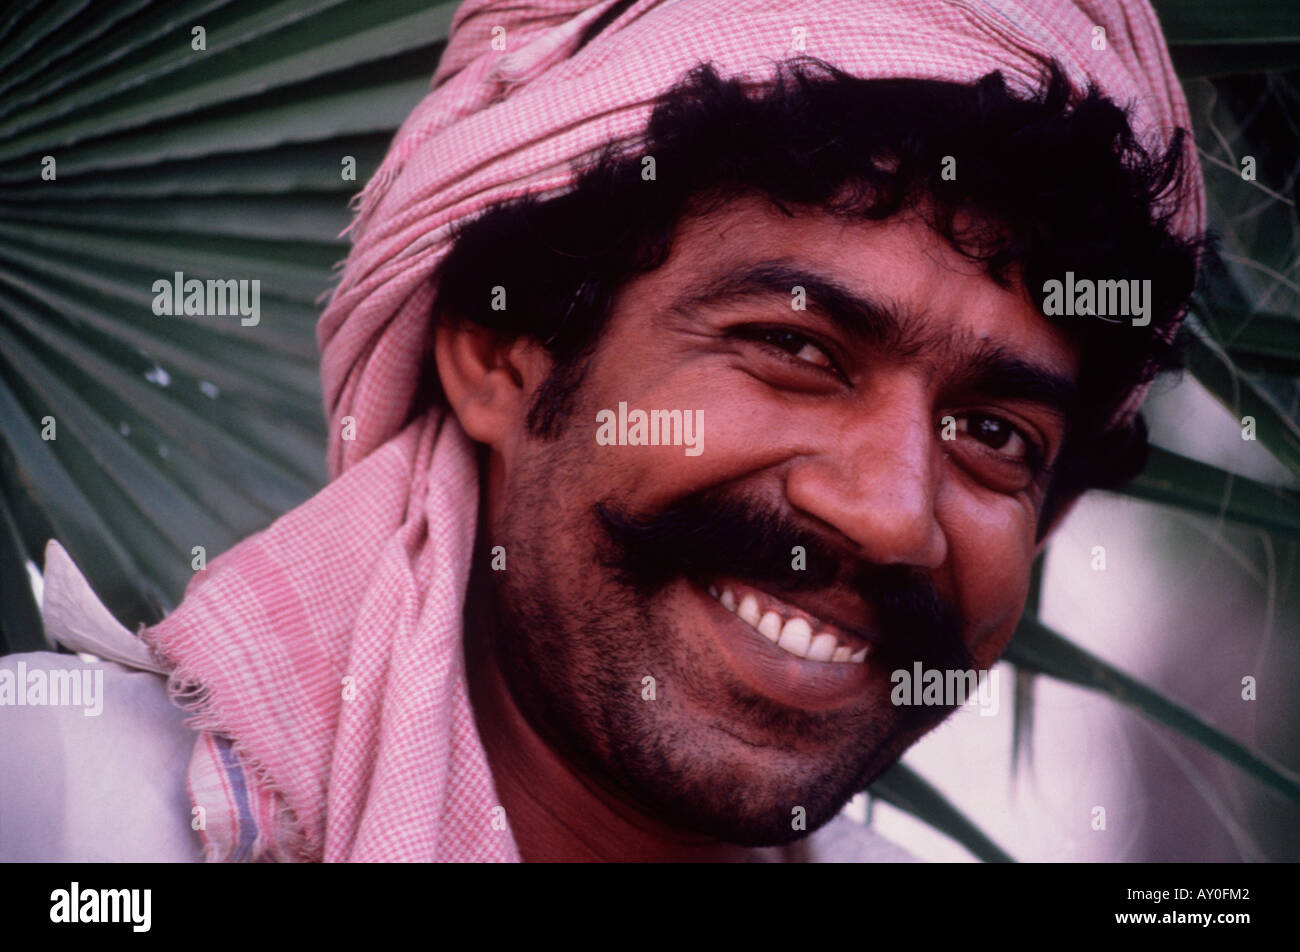 smiling arabic man with toothy grin looking at camera with a happy face jeddah saudi arabia middle east - Stock Image